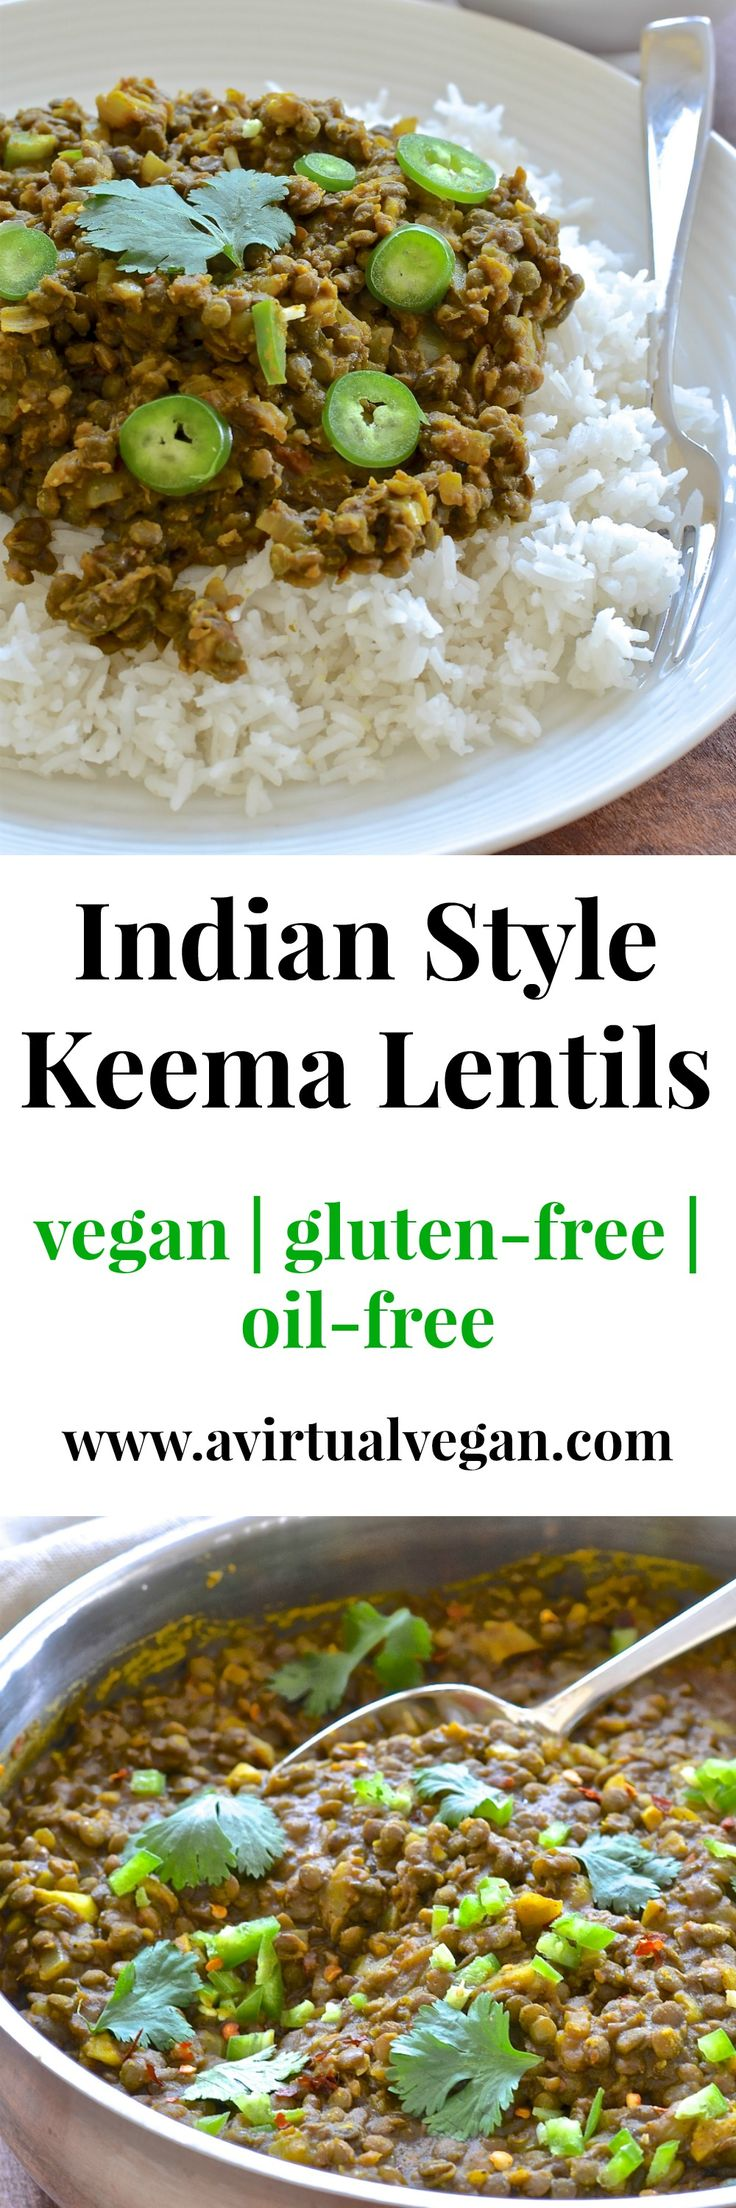 These spicy & flavourful Indian style Keema Lentils are ridiculously easy to make. Cook in a pan for a speedy dinner or use a slow cooker for a more leisurely approach. Serve with my simple & refreshing cucumber raita & some rice for a delicious & satisfying meal.  via @avirtualvegan